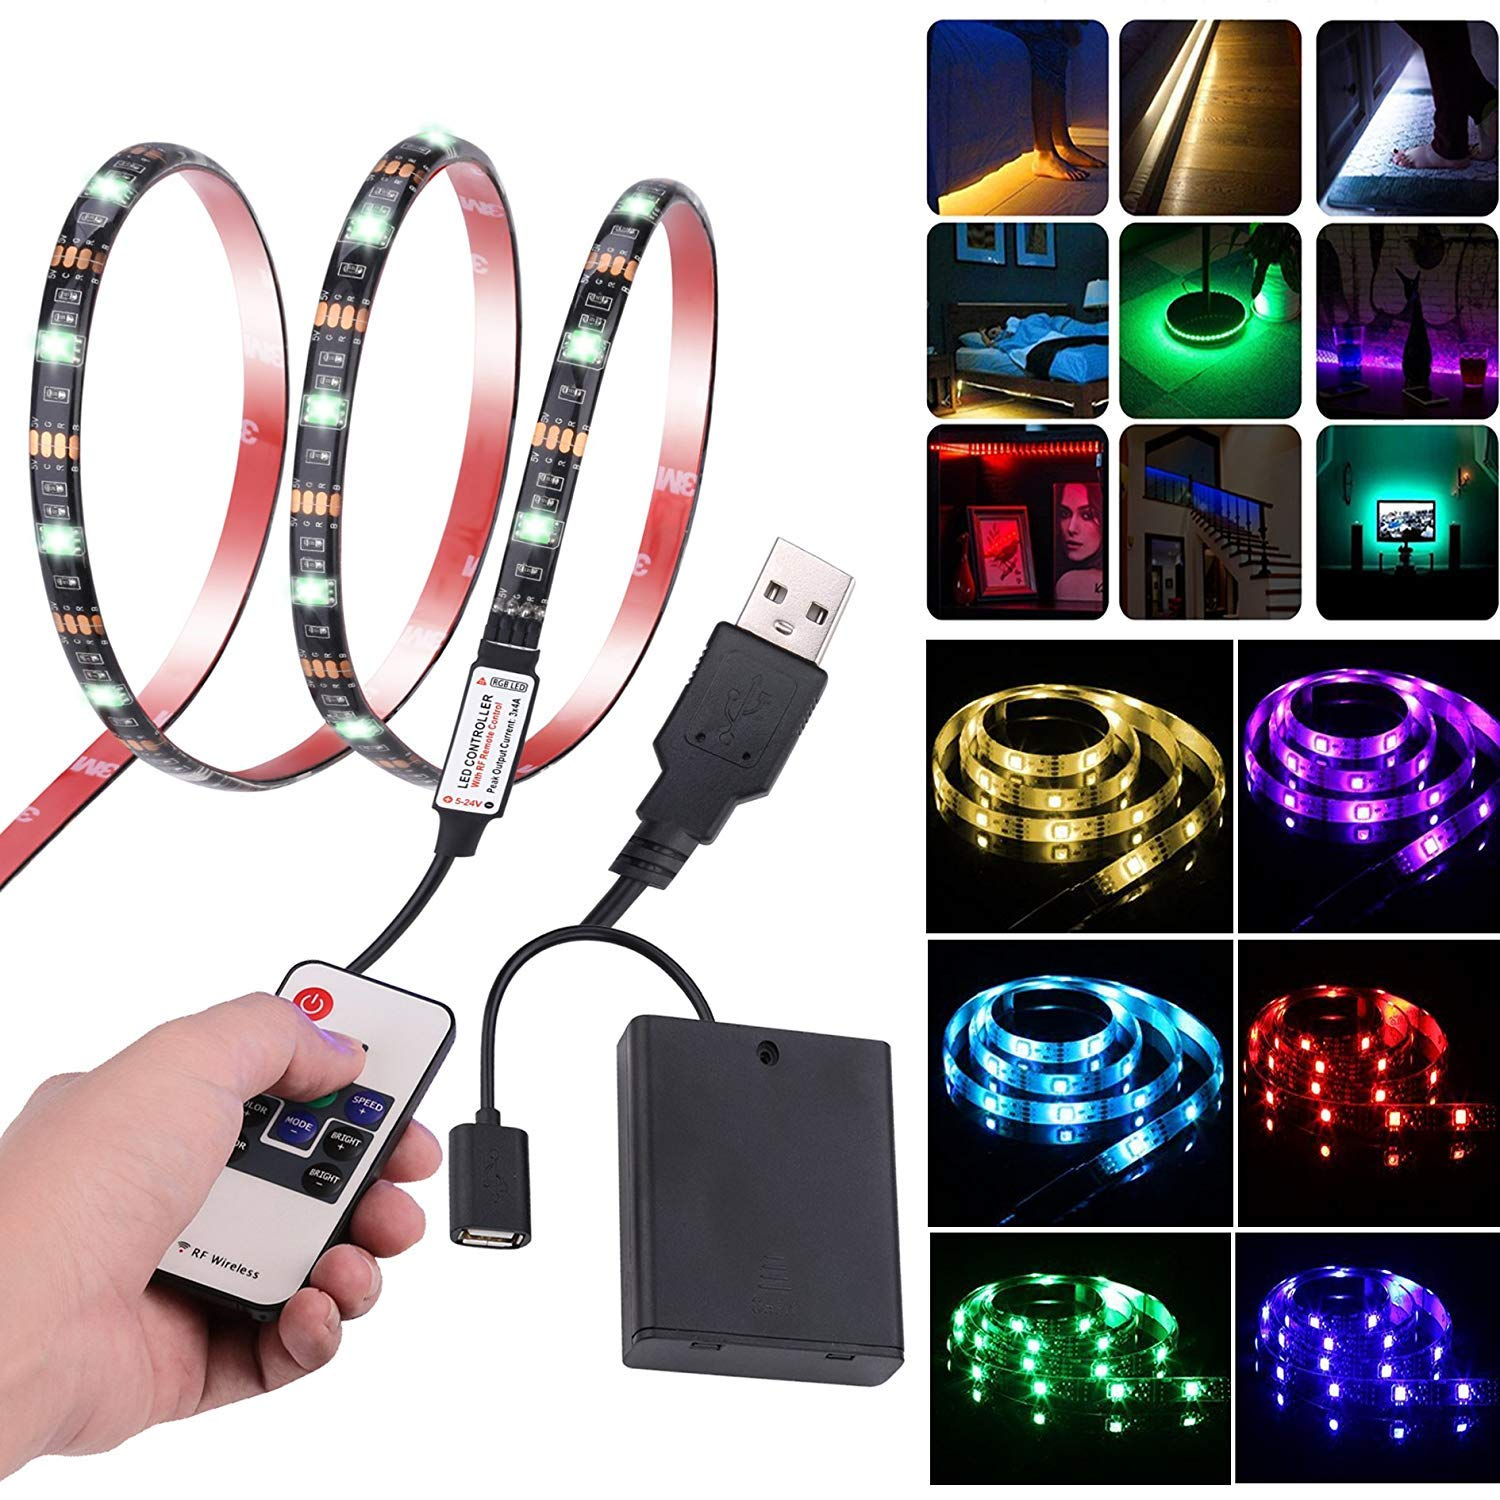 Leimaq Led Strip Lights USB Battery Powered TV Backlight Led Light Strip with RF Remote Waterproof Multi Color Changing RGB SMD 5050 Rope Light by Leimaq